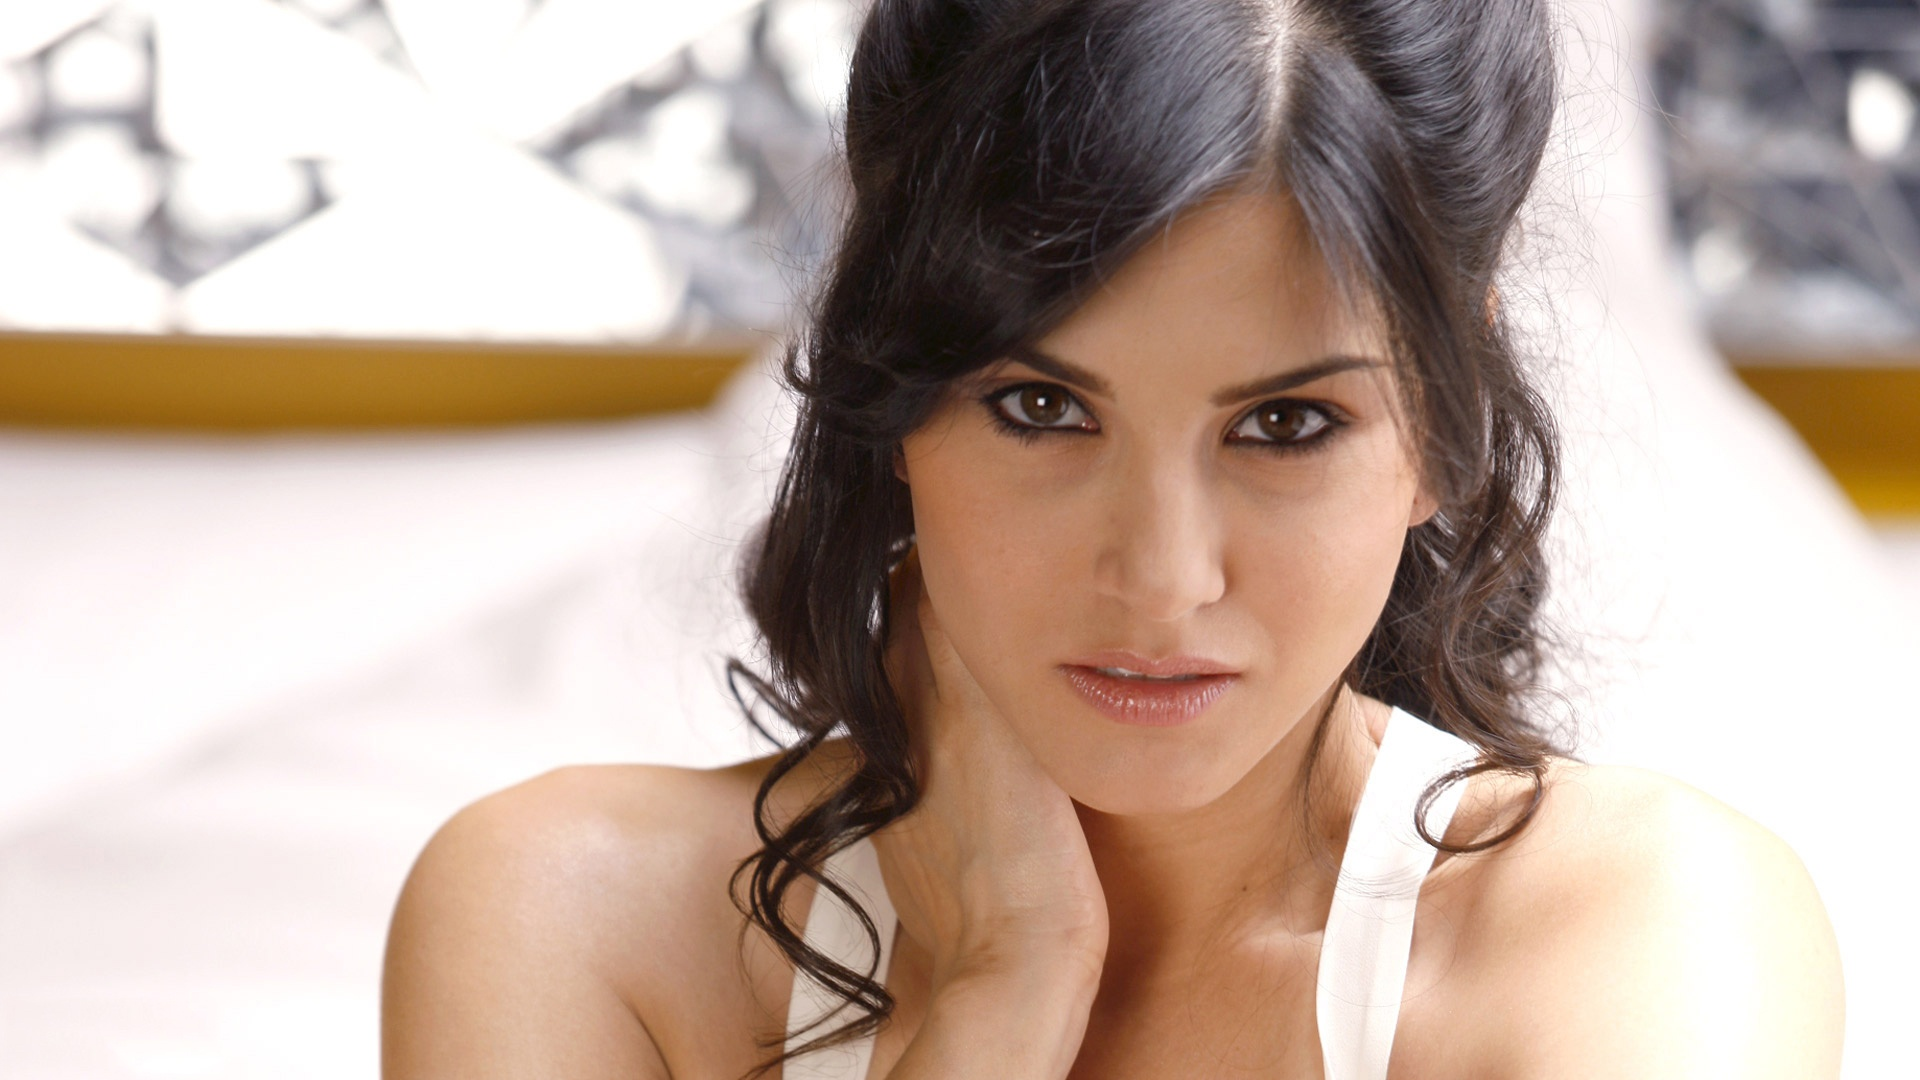 Sunny Leone Hd Pic Wallpapers 69 Wallpapers  3D Wallpapers-8764